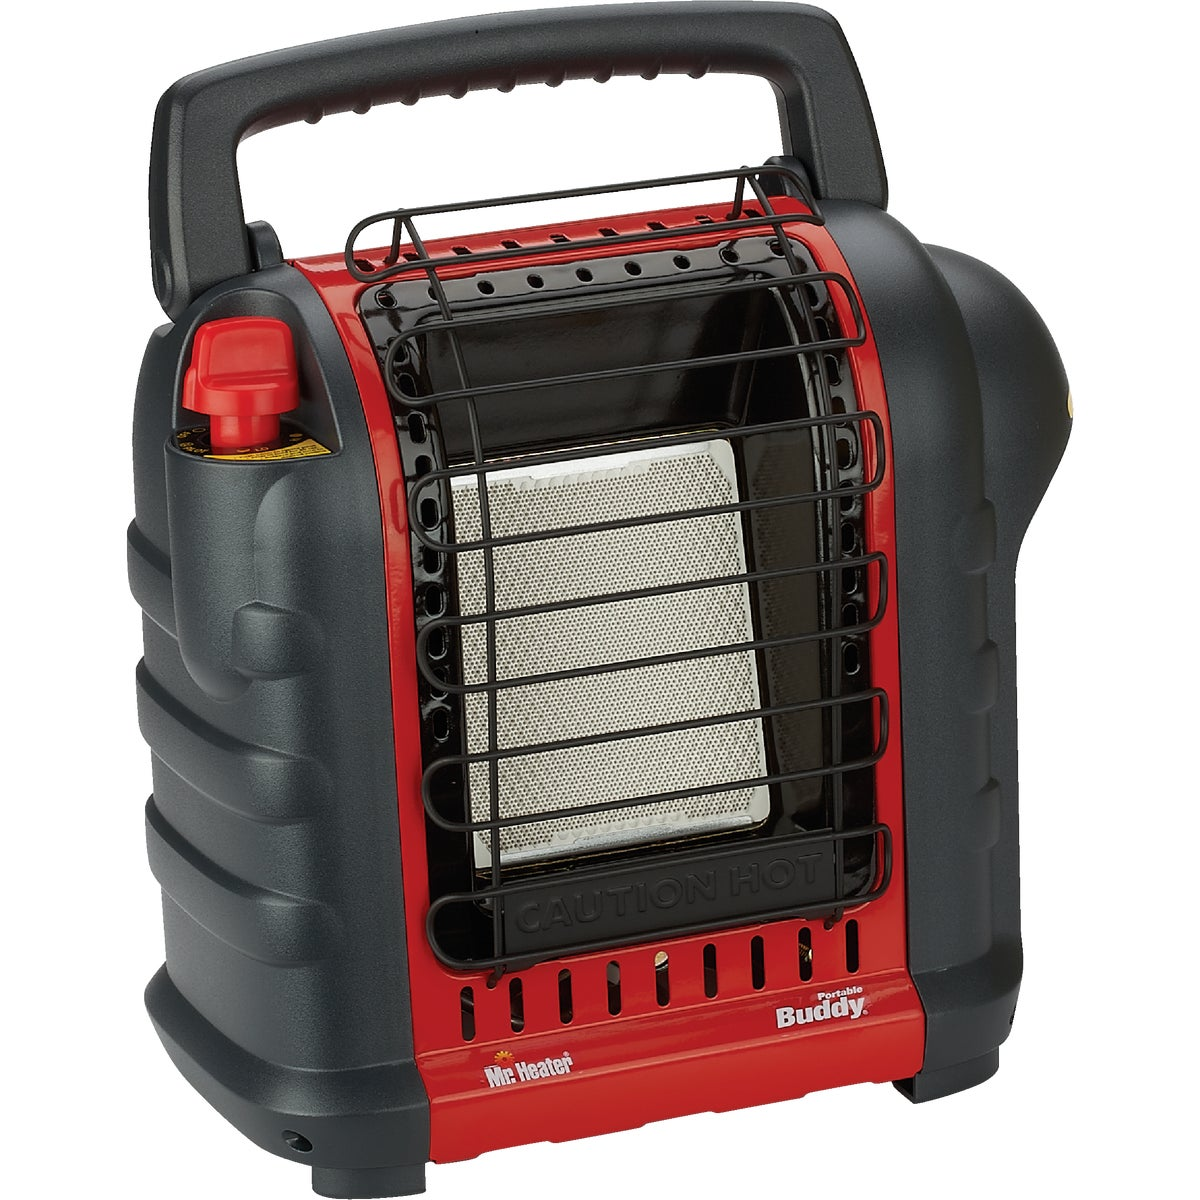 LP PORTABLE BUDDY HEATER - F232000 by Mr Heater Corp